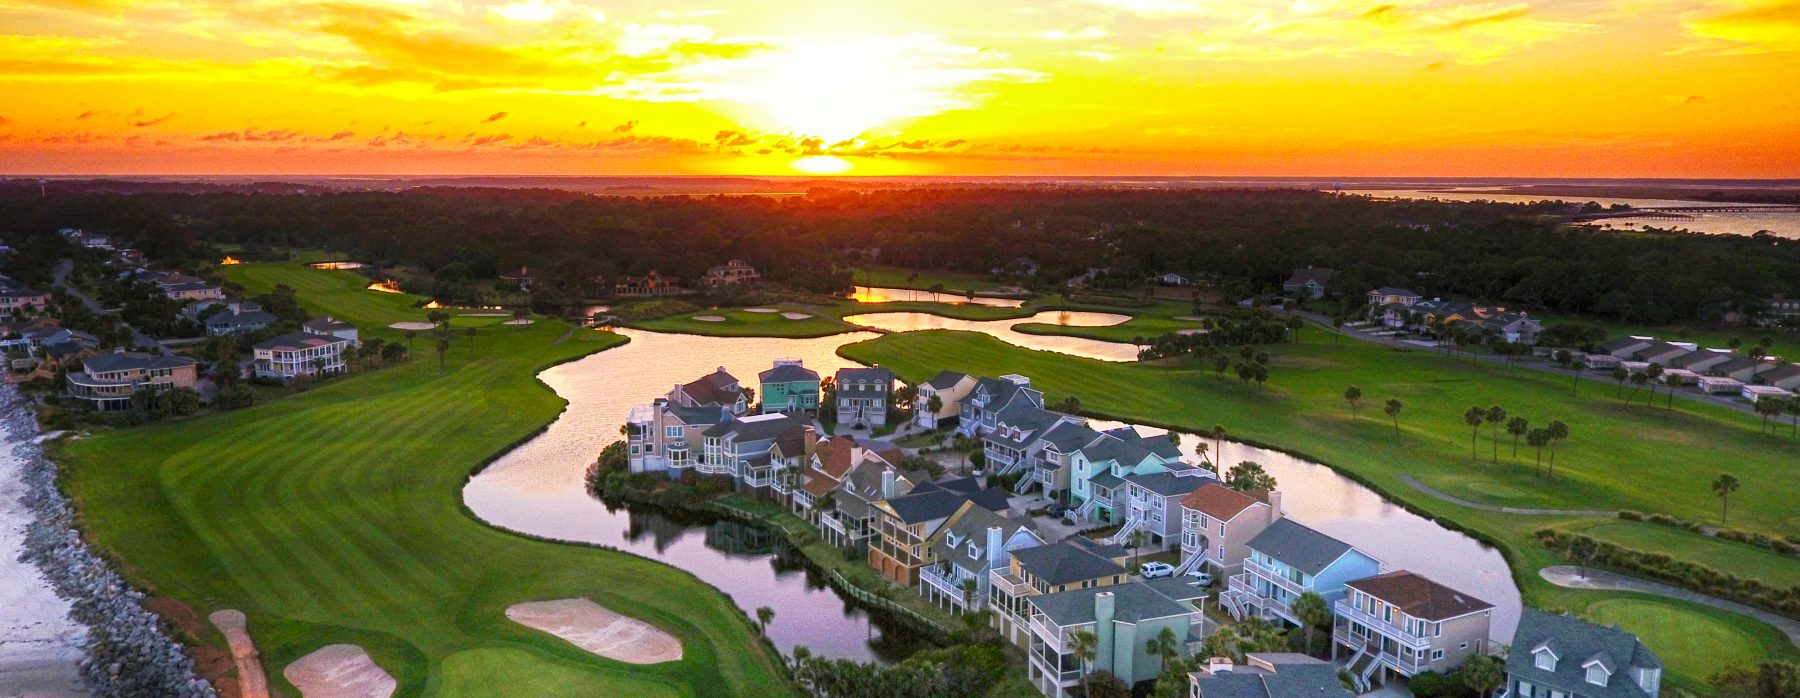 Aerial shot of Fripp Island at Sunset